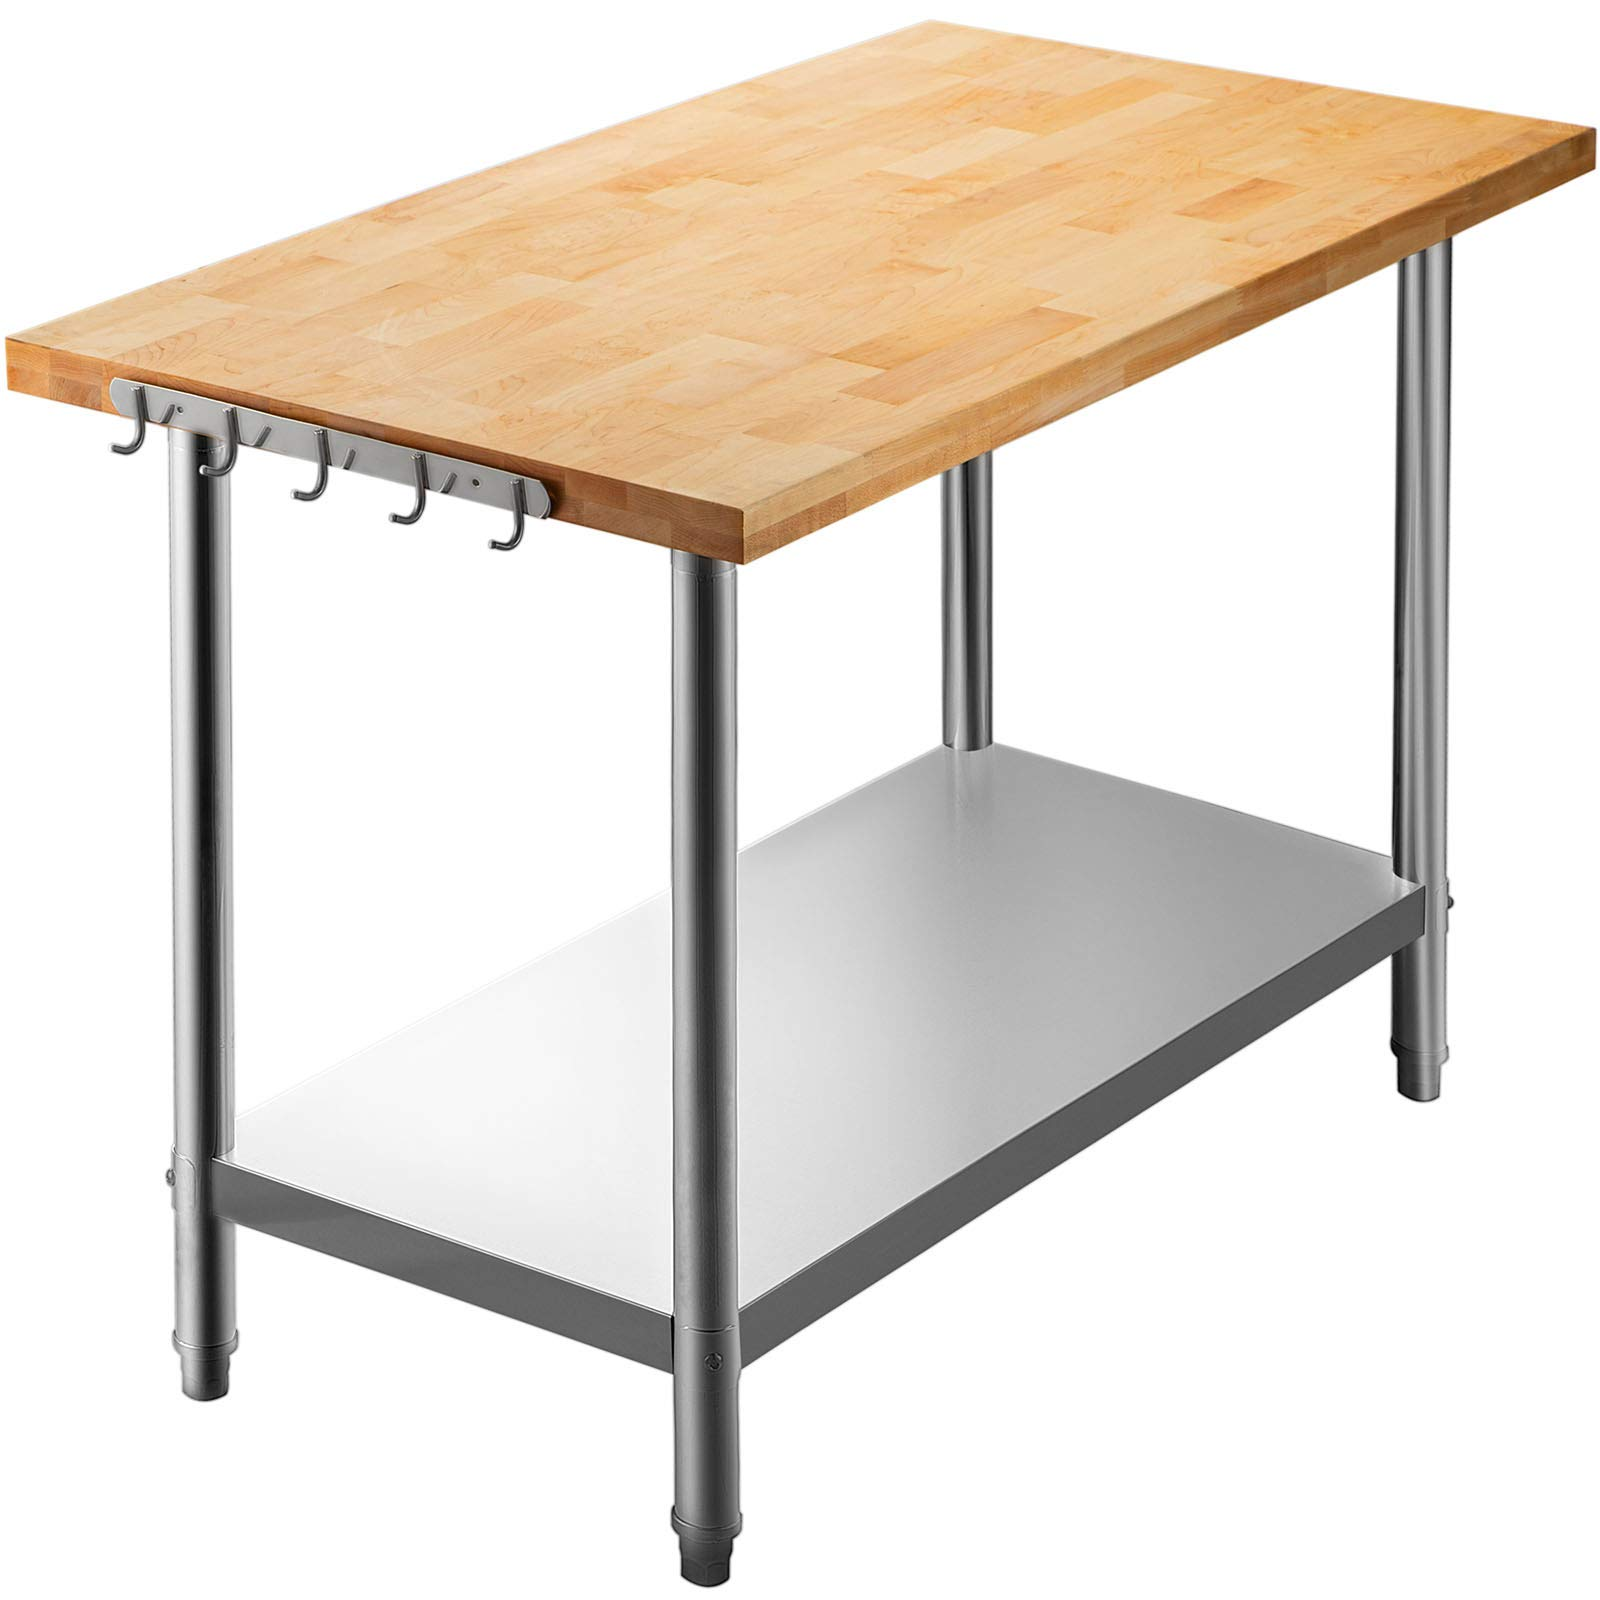 VEVOR Maple Top Work Table, 48 x 24 Inches Stainless Steel Kitchen Prep Table Wood, 1.5 Inch Thick Kitchen Maple Table with Lower Shelf and Feet, Stainless Steel Table for Home and Kitchen